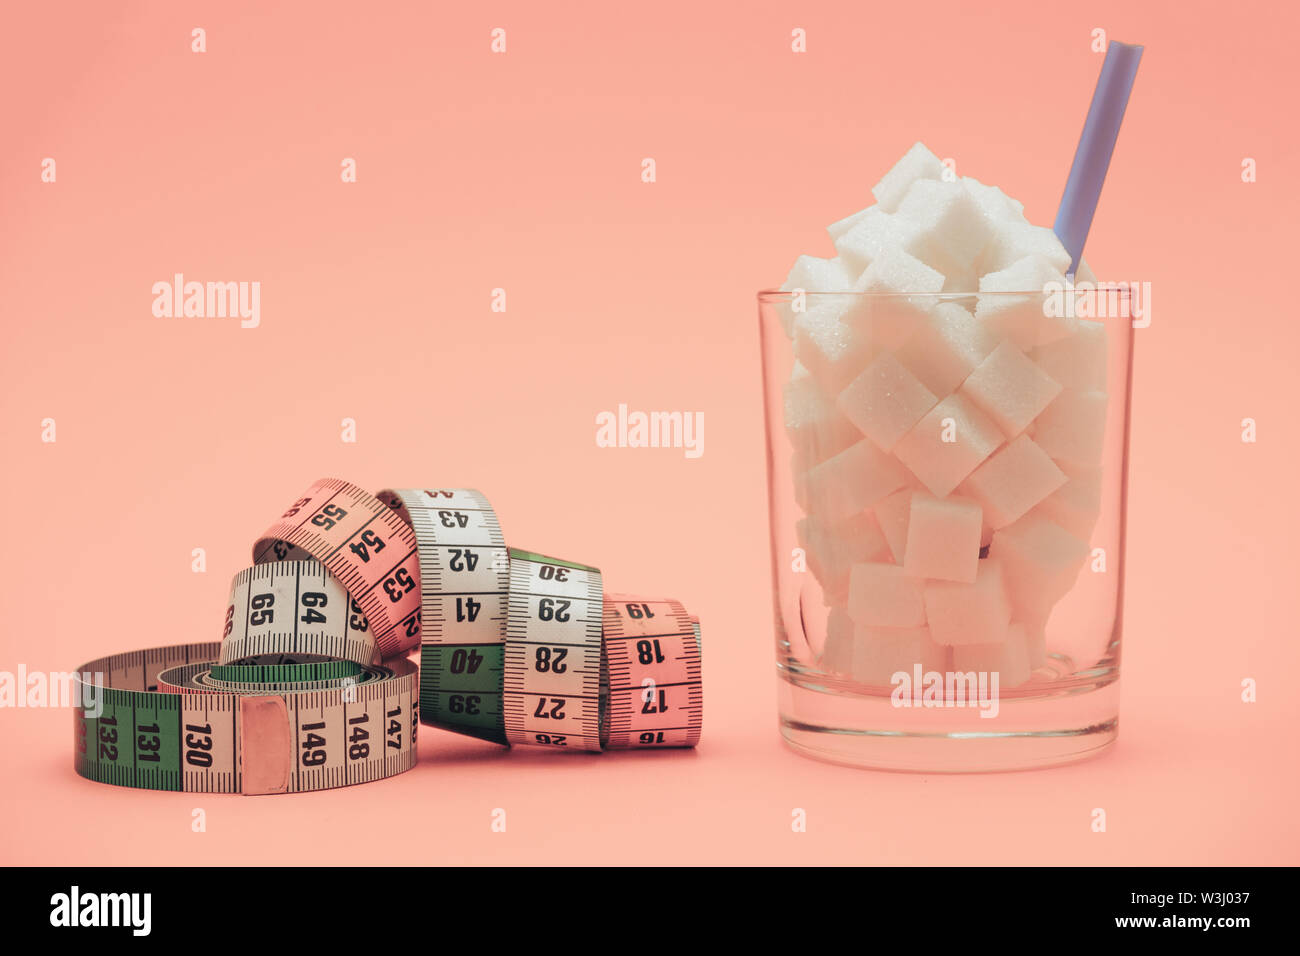 Glass full of cubes sugar with straw on a beautiful peach  background  - unhealthy diet concept. - Stock Image